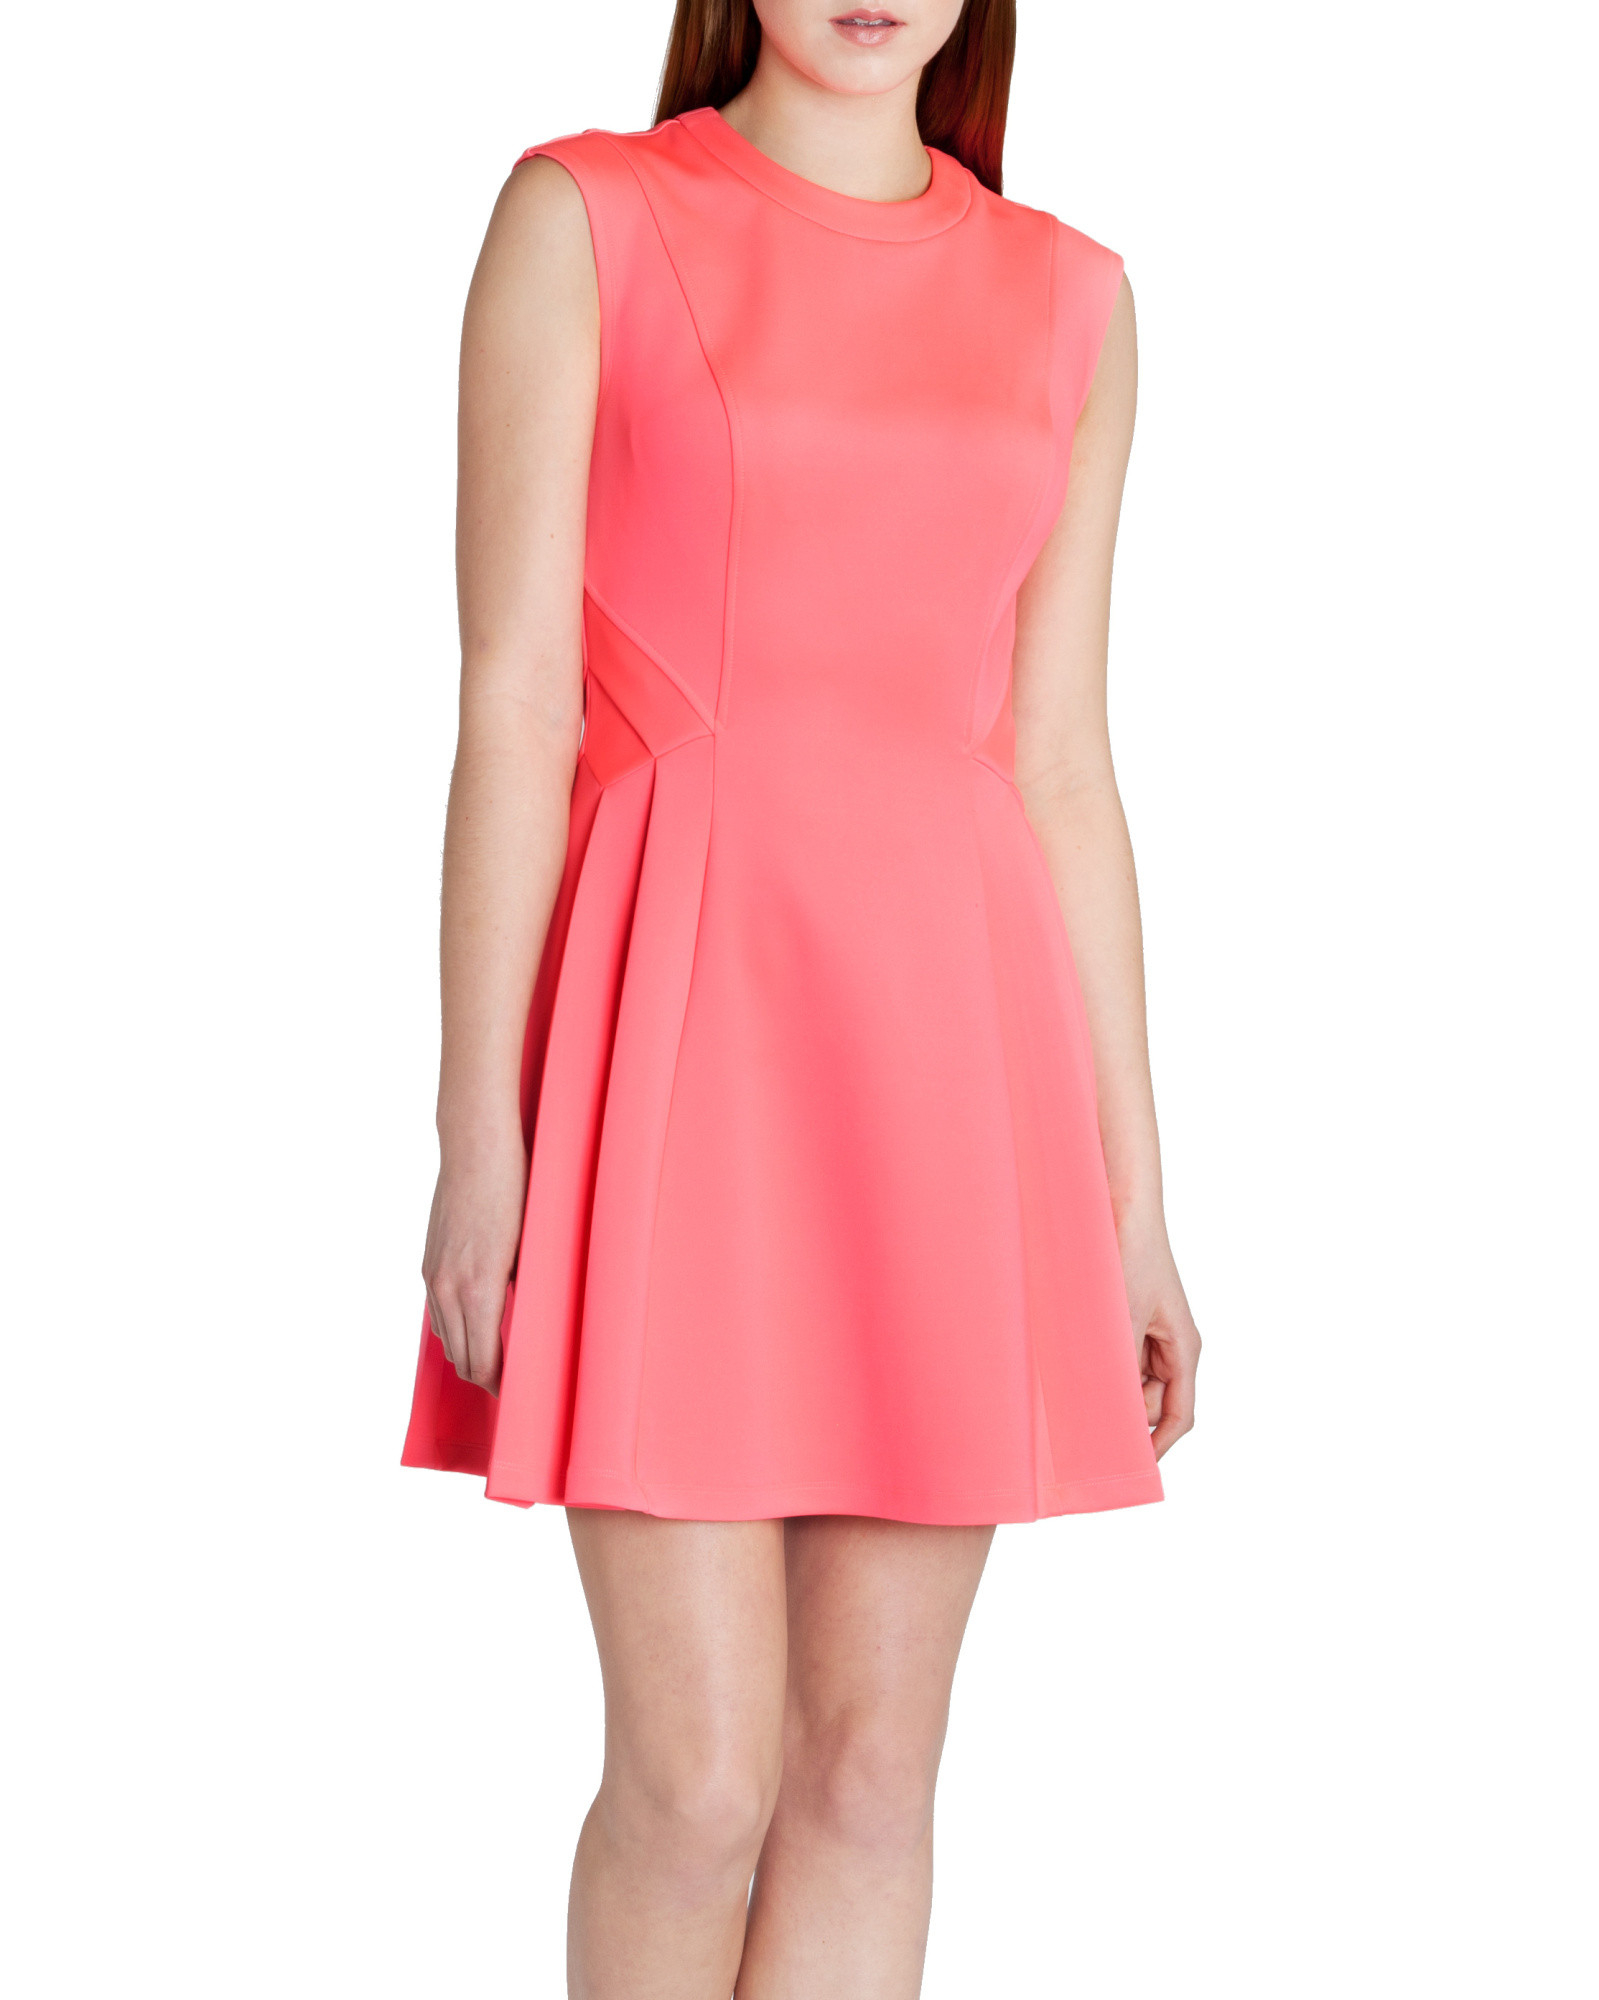 be379f763e2c57 Ted Baker Nistee Skater Dress in Pink - Lyst